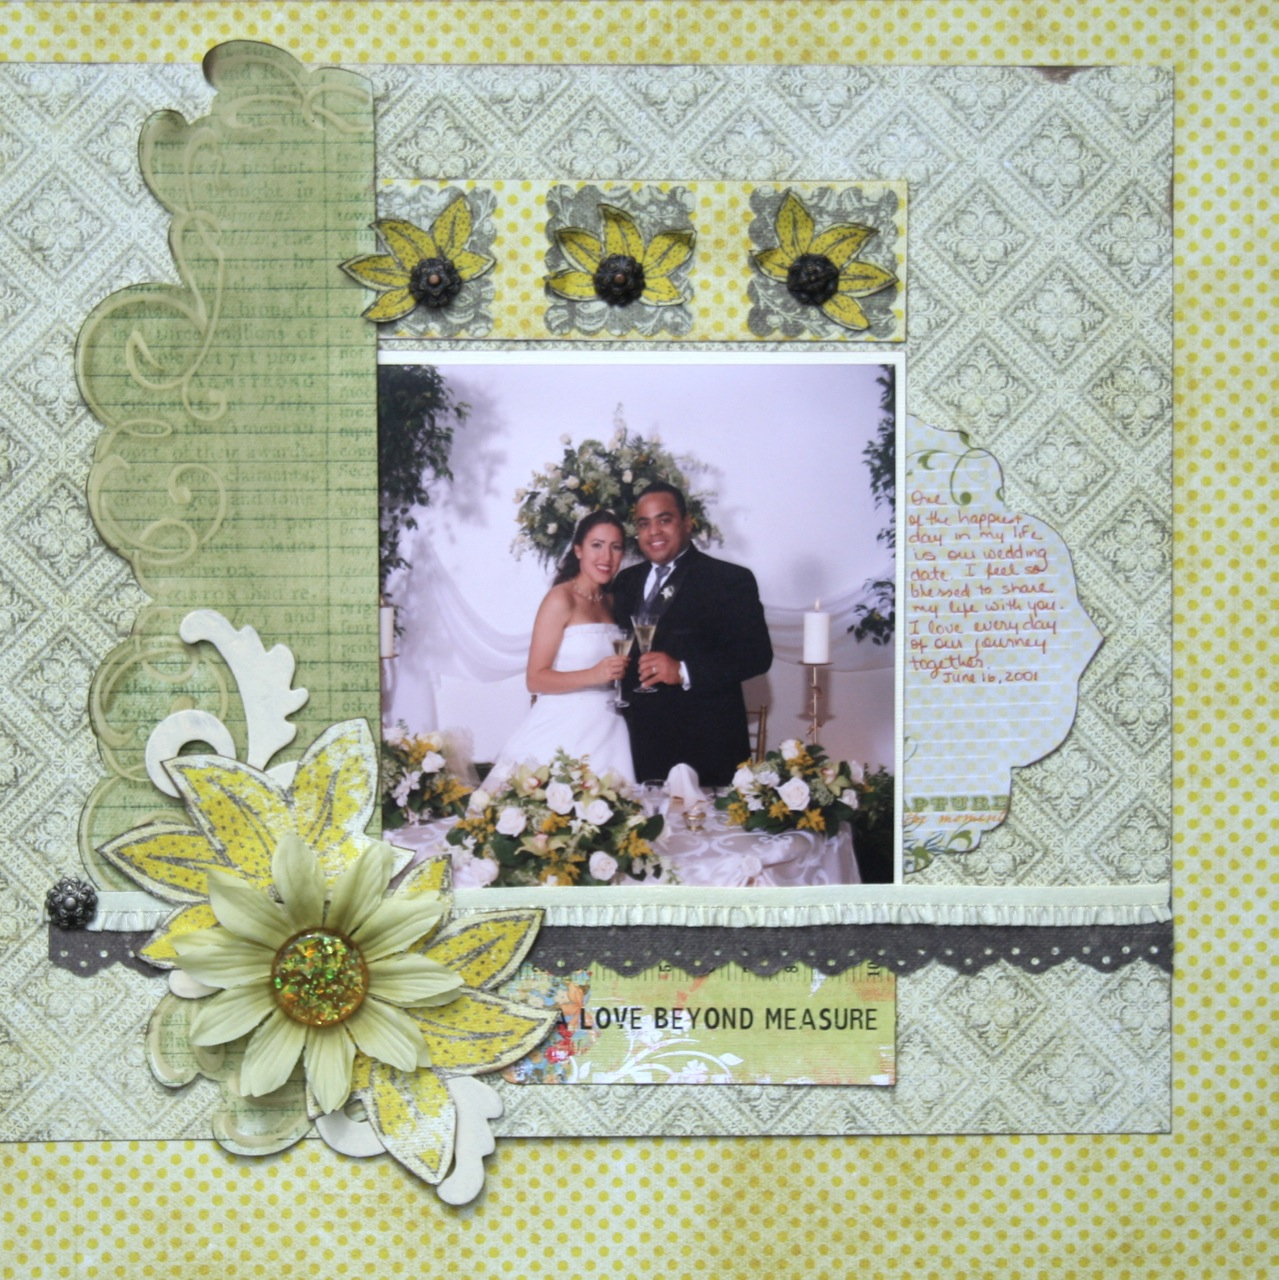 Engagement Scrapbook Layout Pictures http://itssummereveryday.blogspot.com/2010/11/wedding-scrapbook-layout.html